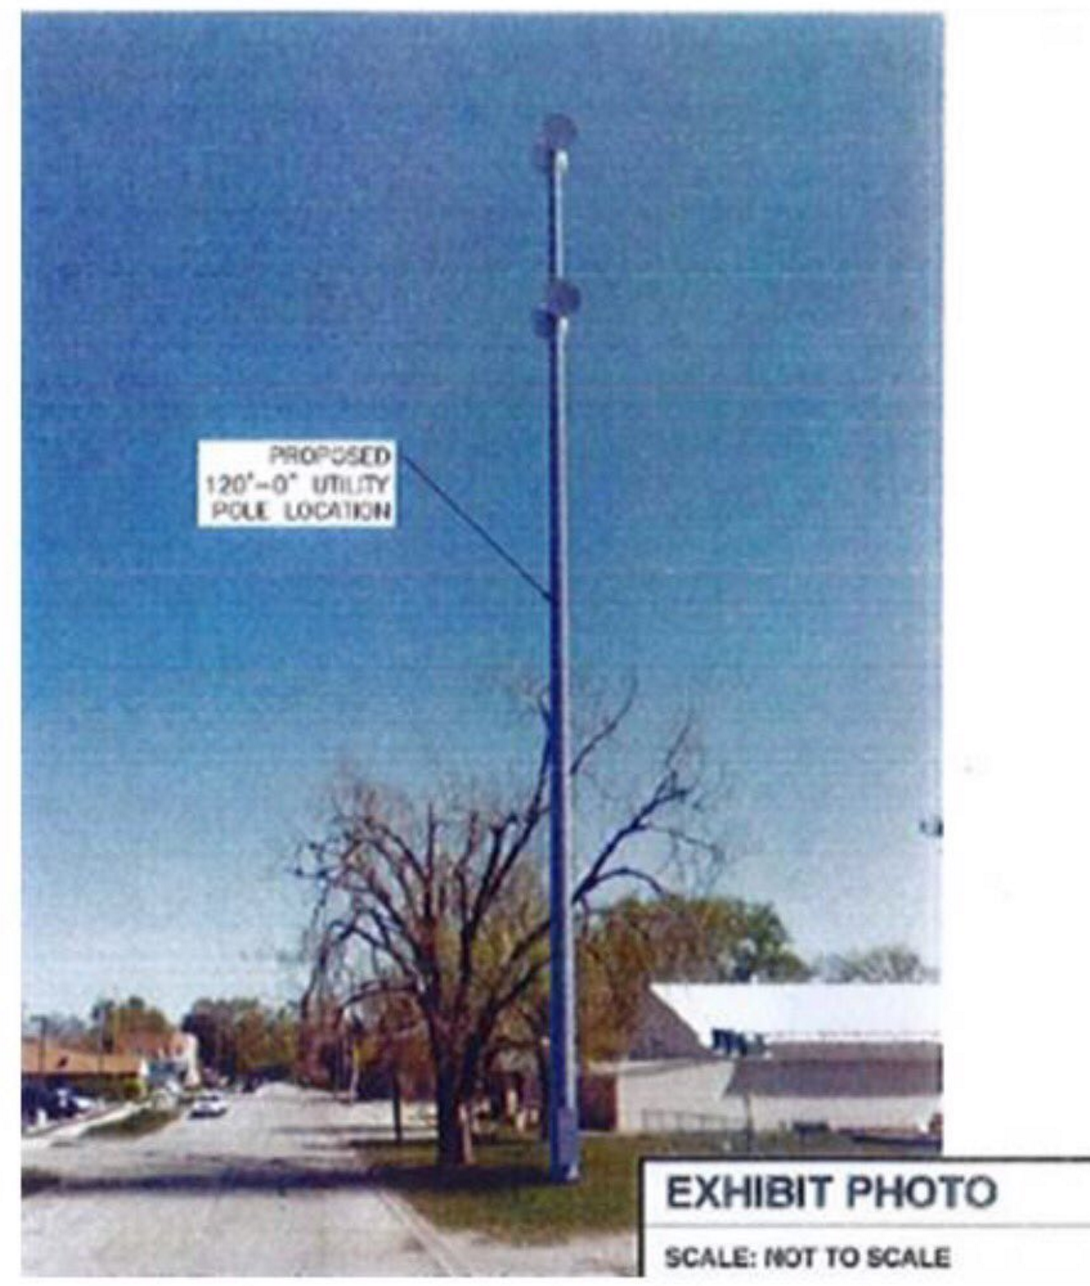 10 Key Issues For California Cities Counties On The Challenges Of Lights As Well Flasher Relay Wiring Diagram Together With Street Light Why Is This Proposed 120 Foot Tall Small Cell So And Close To Residential Driveways It Appears That Mobilitie Sprints Network